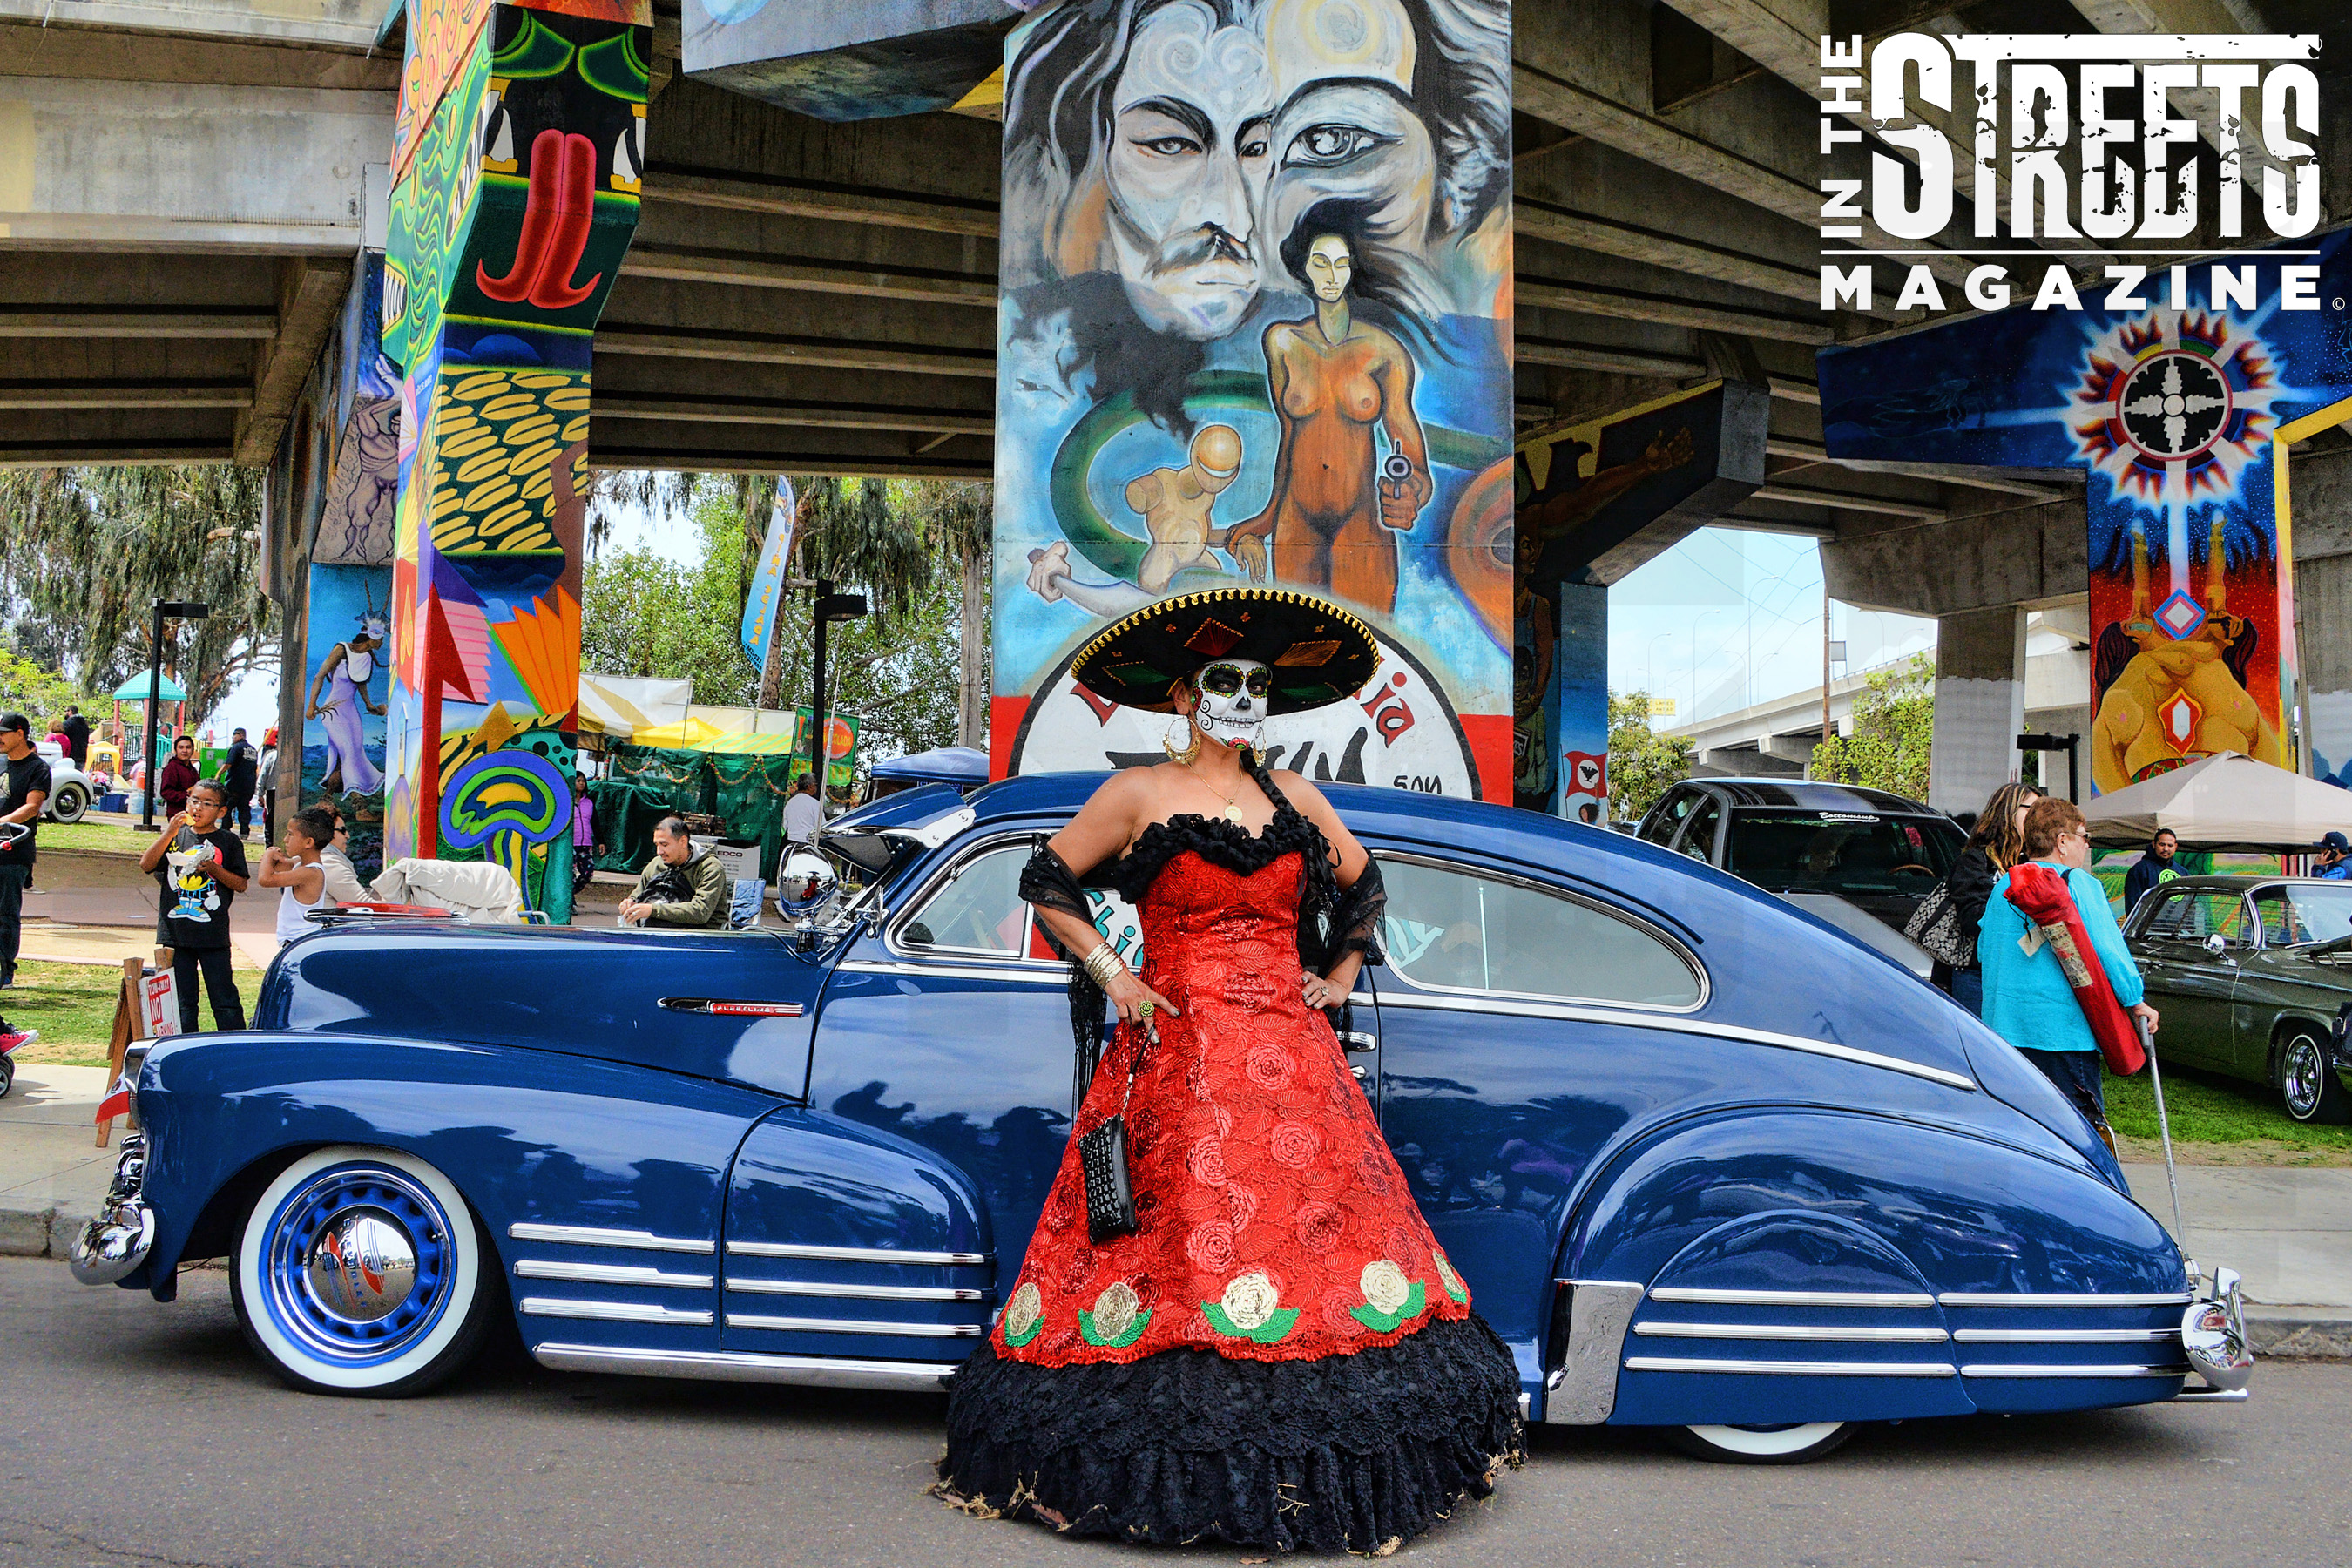 chicano park in the streets magazine